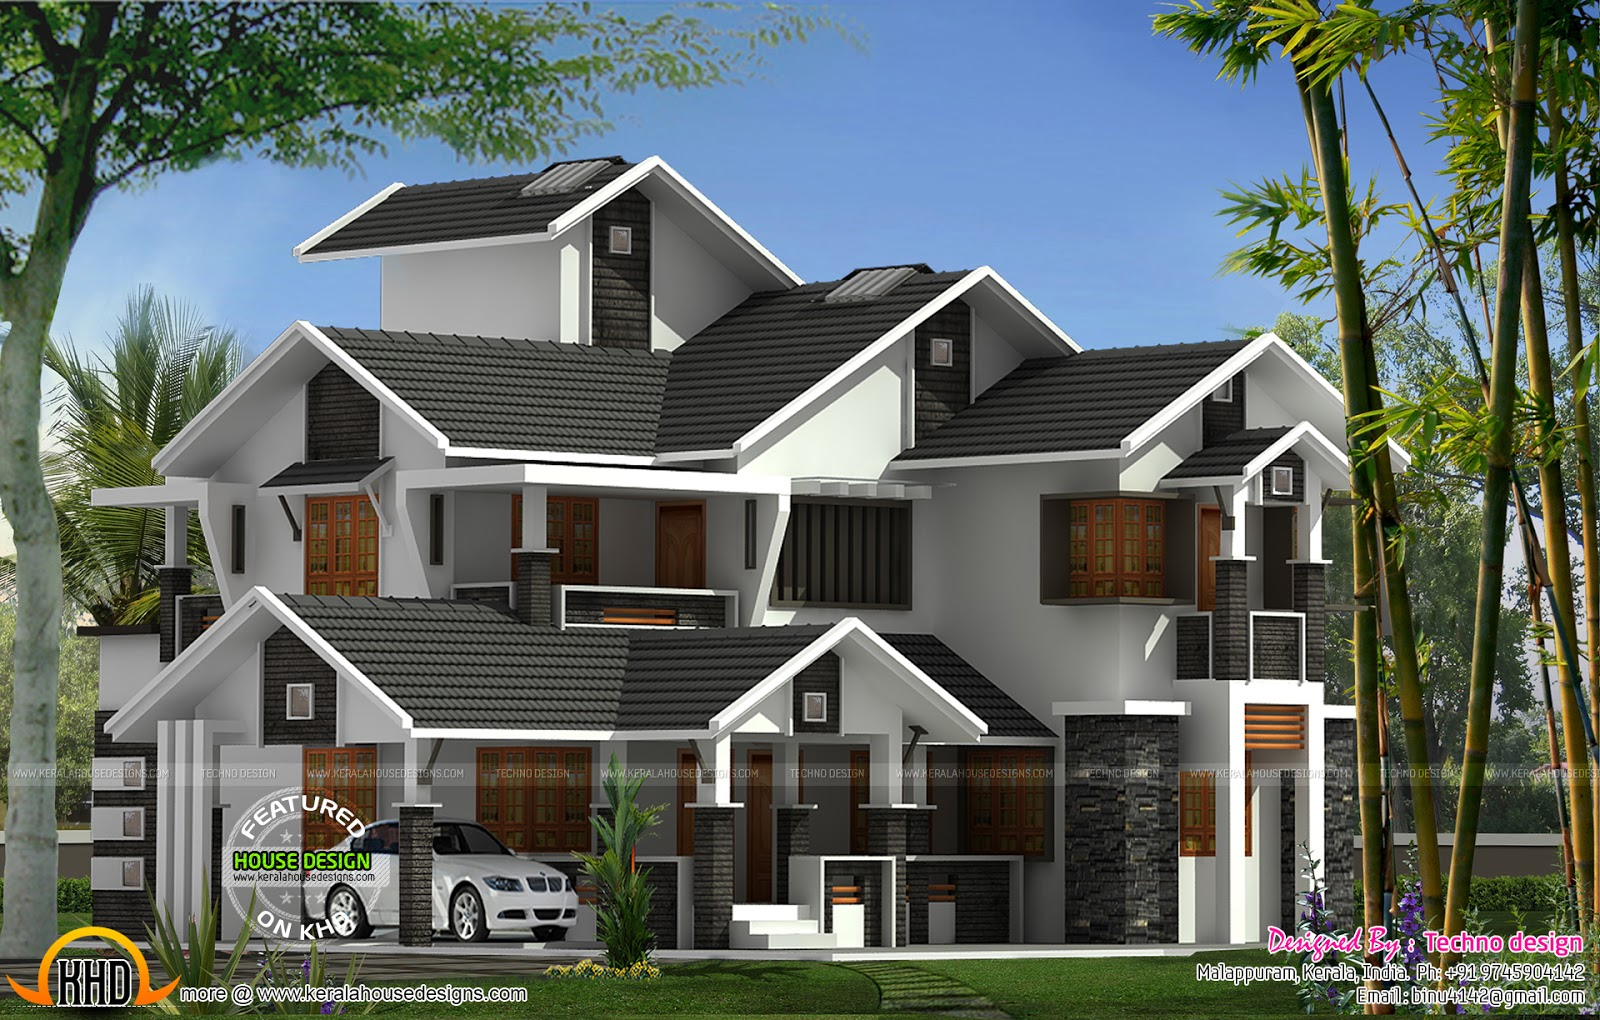 Sloped roof modern home - Kerala home design and floor plans